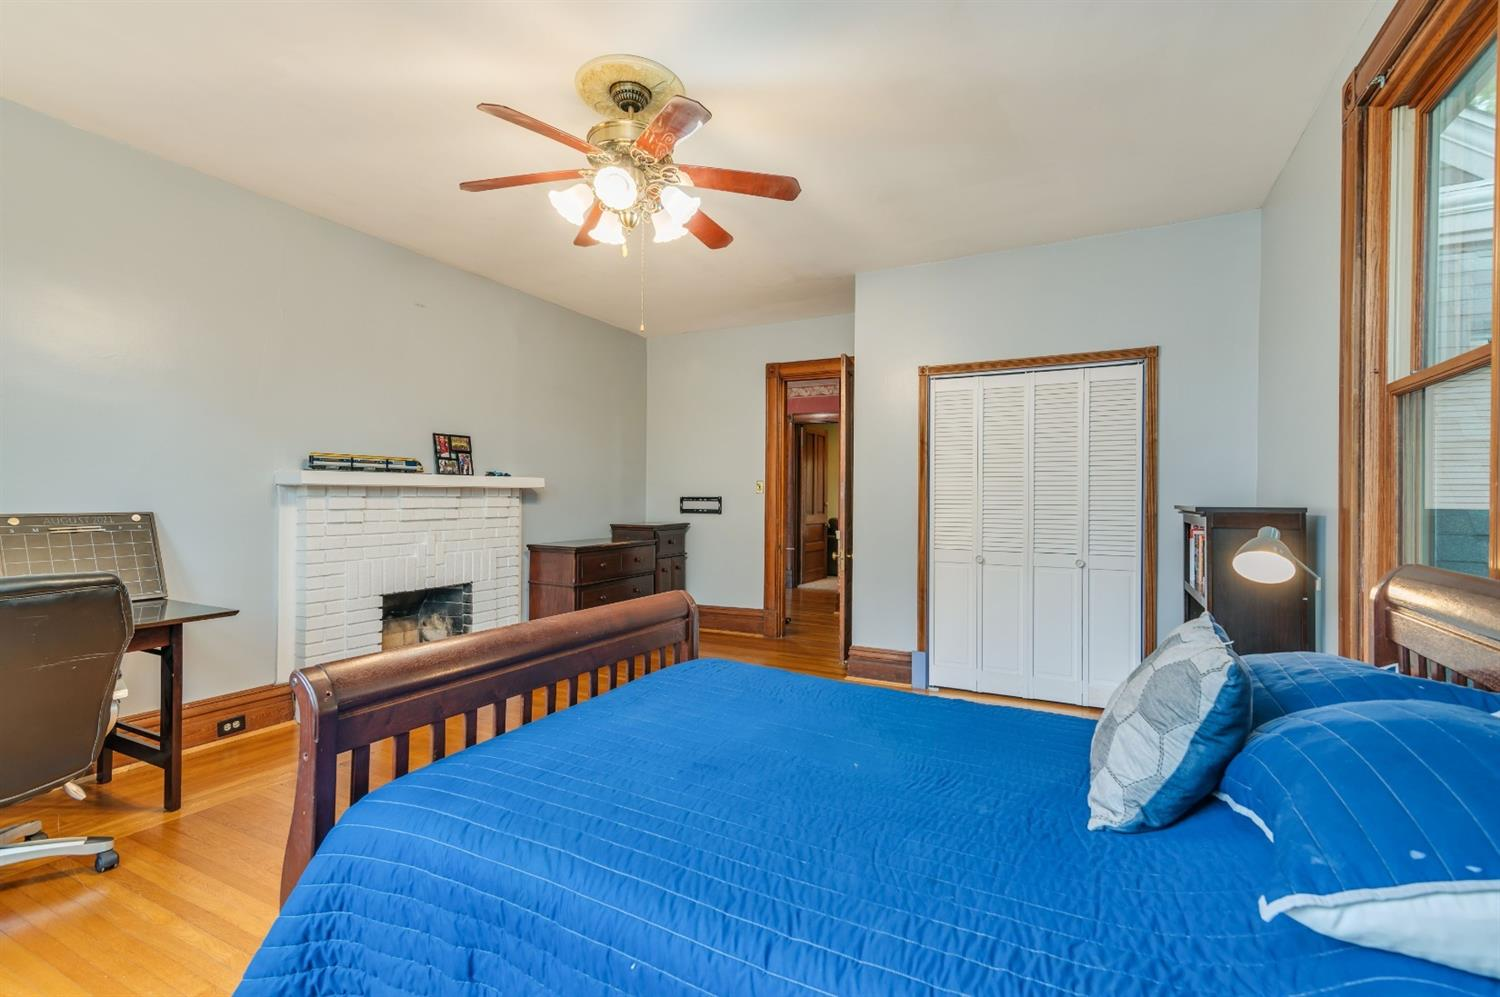 Spacious bedroom 3, fireplace is not functional.